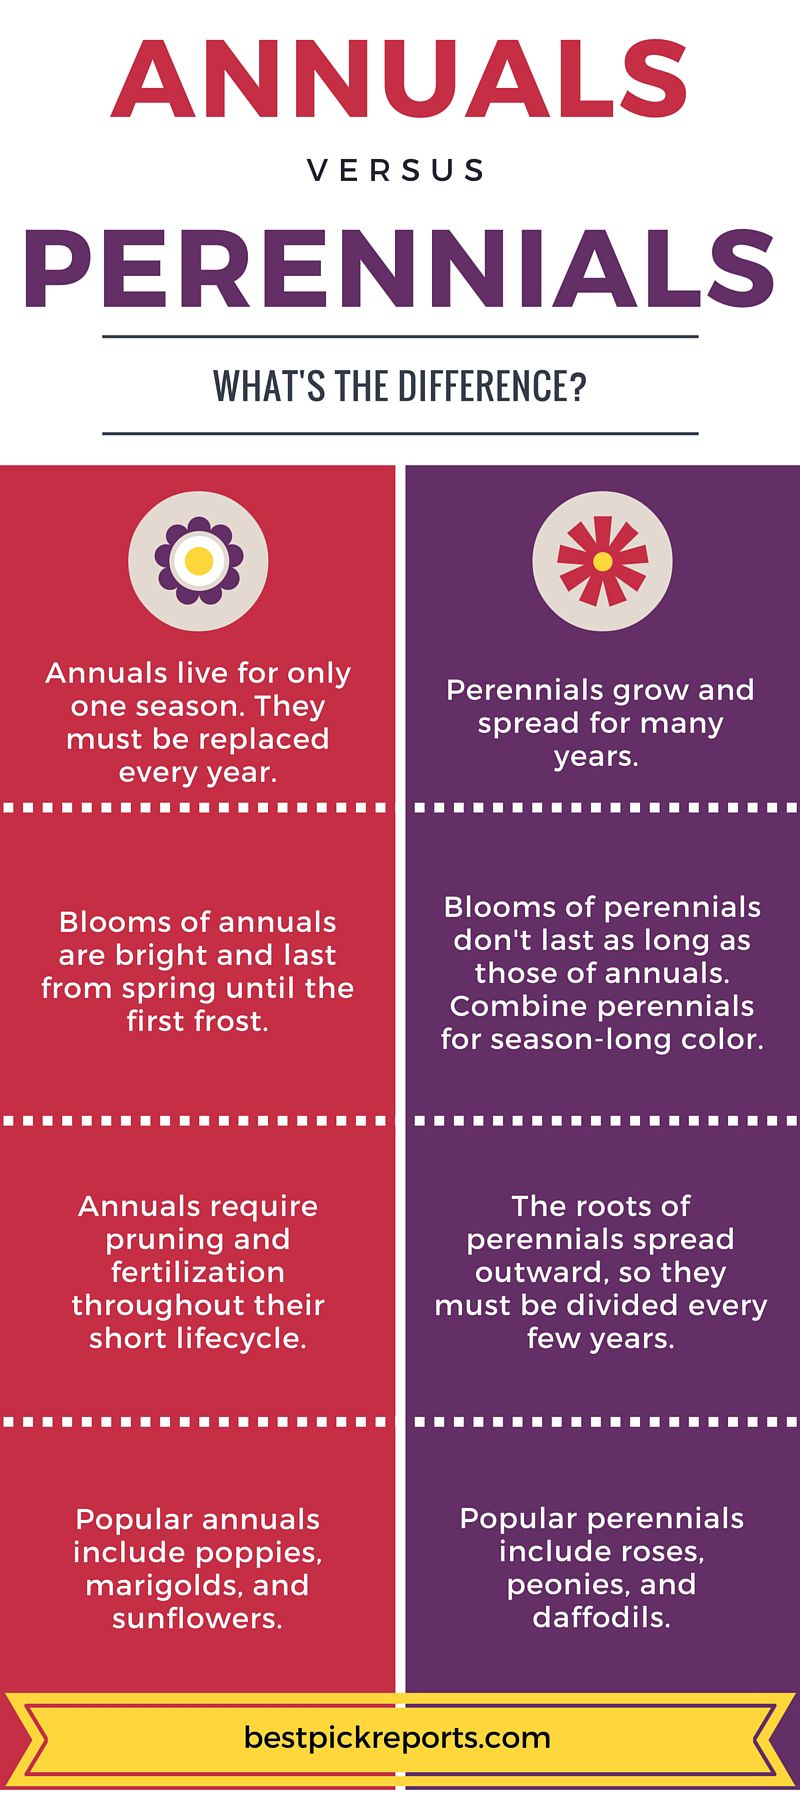 Know The Differences Between Annuals And Perennials